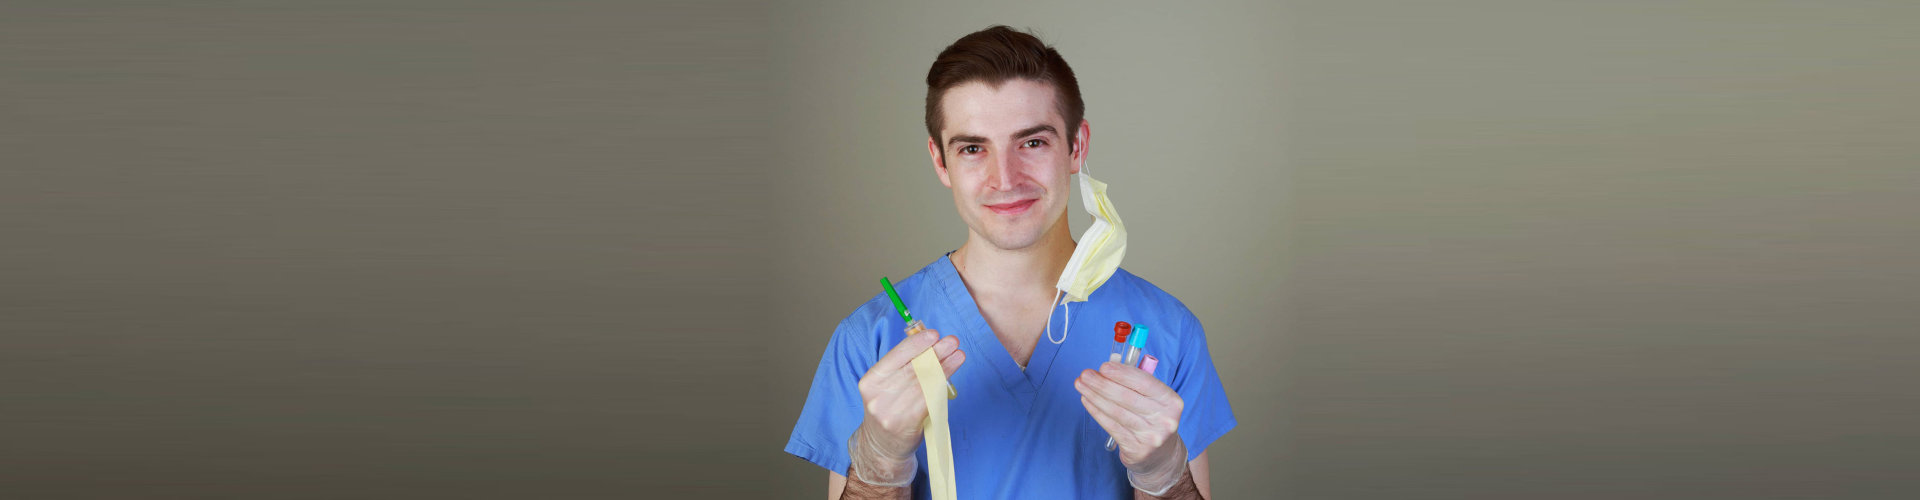 Young male phlebotomist with equipment for drawing blood